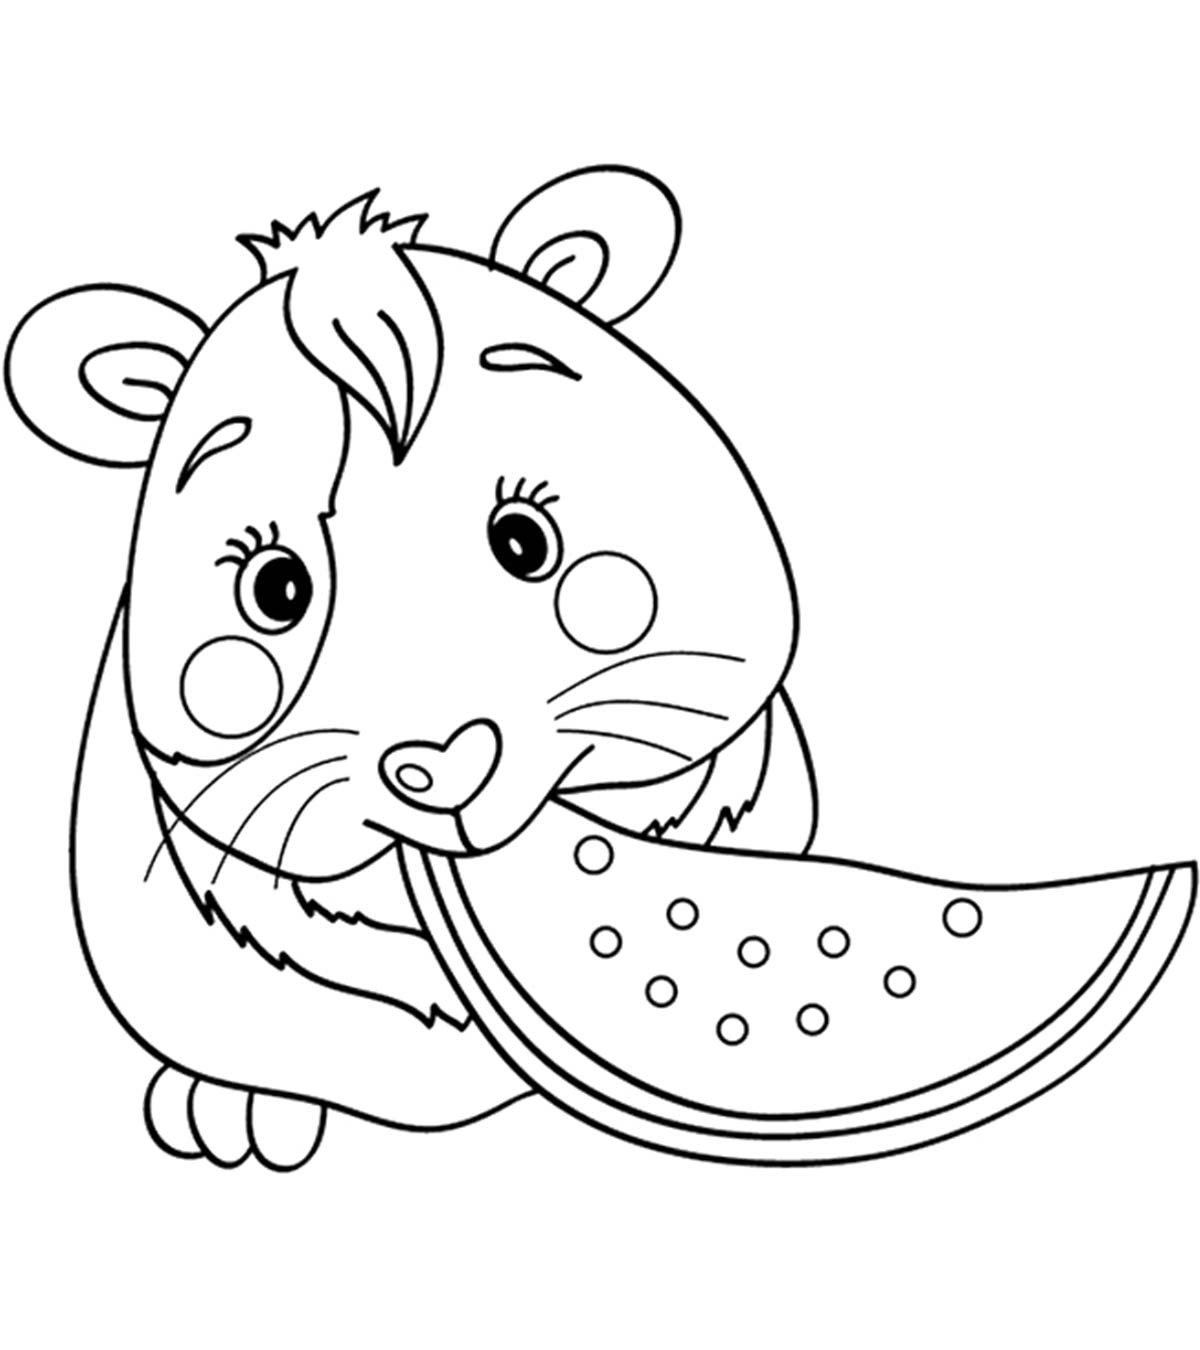 Cartoon Guinea Pig Coloring Pages